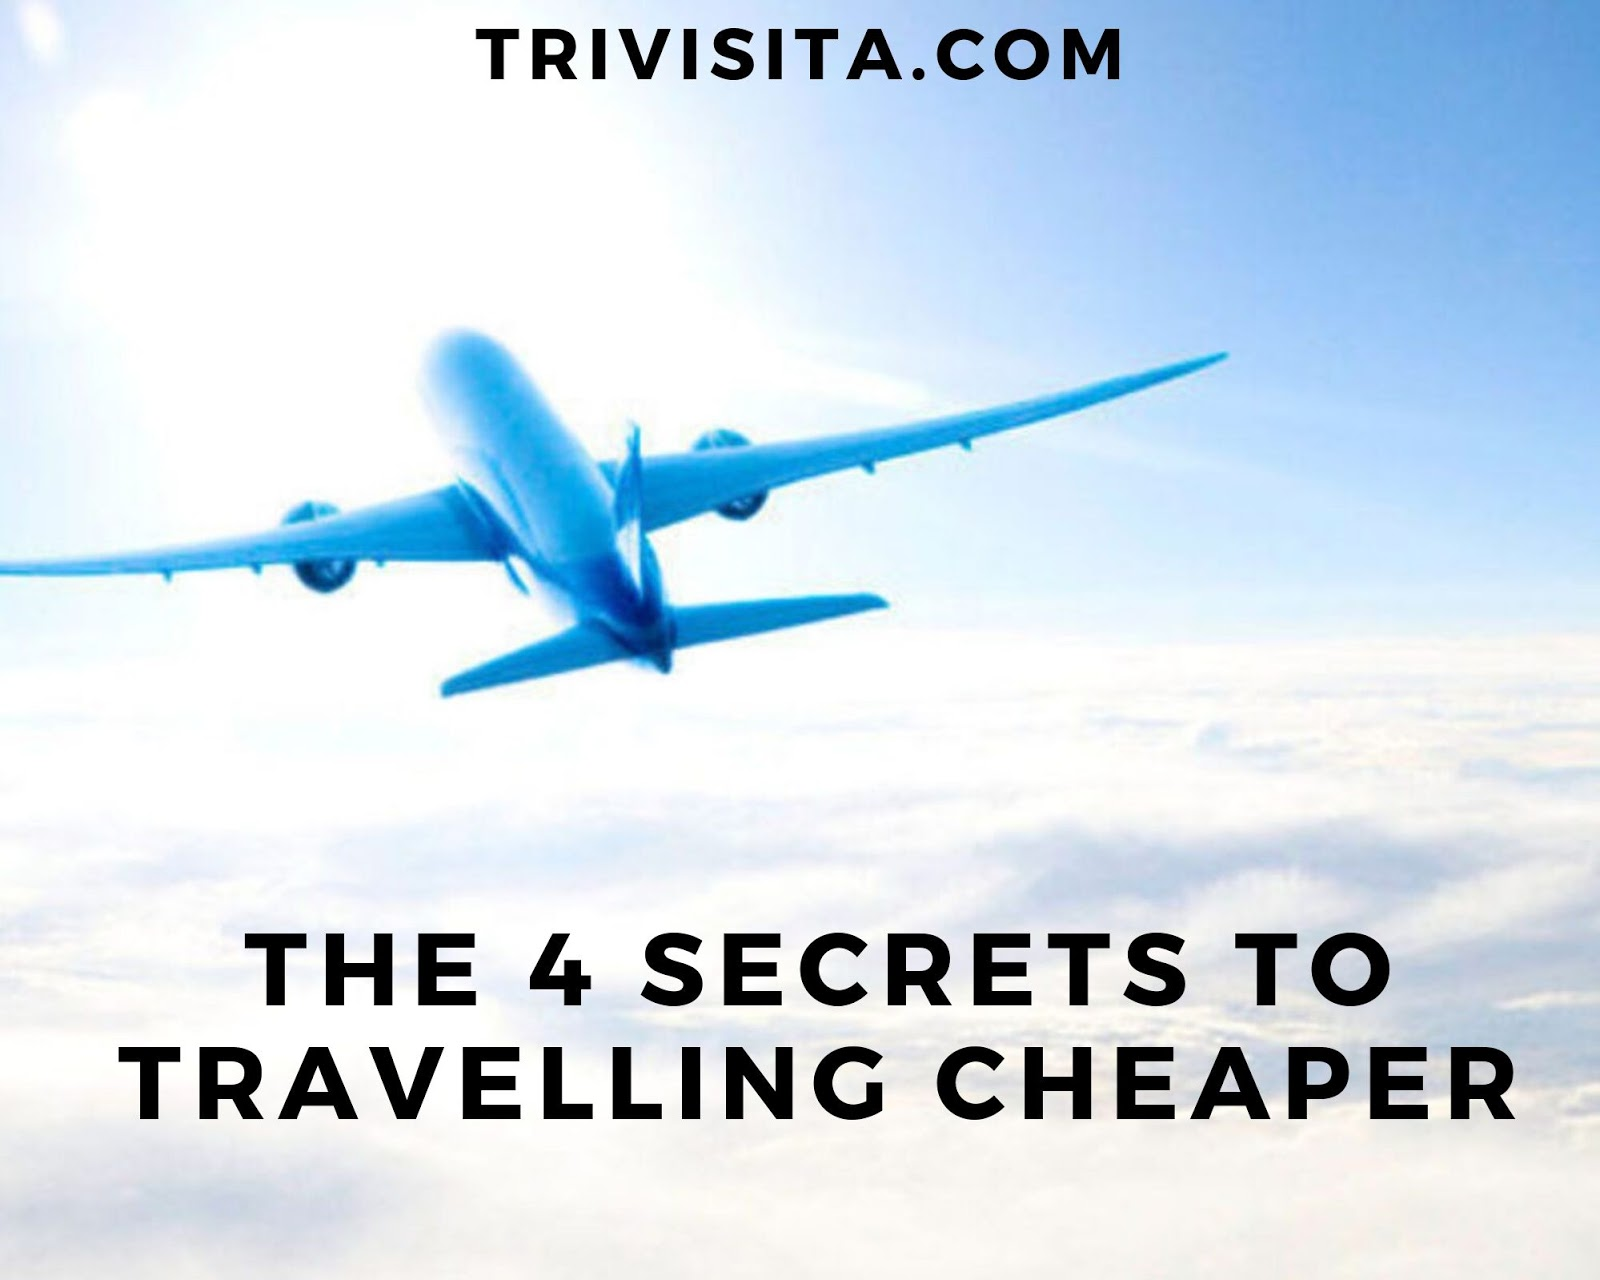 The 4 Secrets to Travelling Cheaper